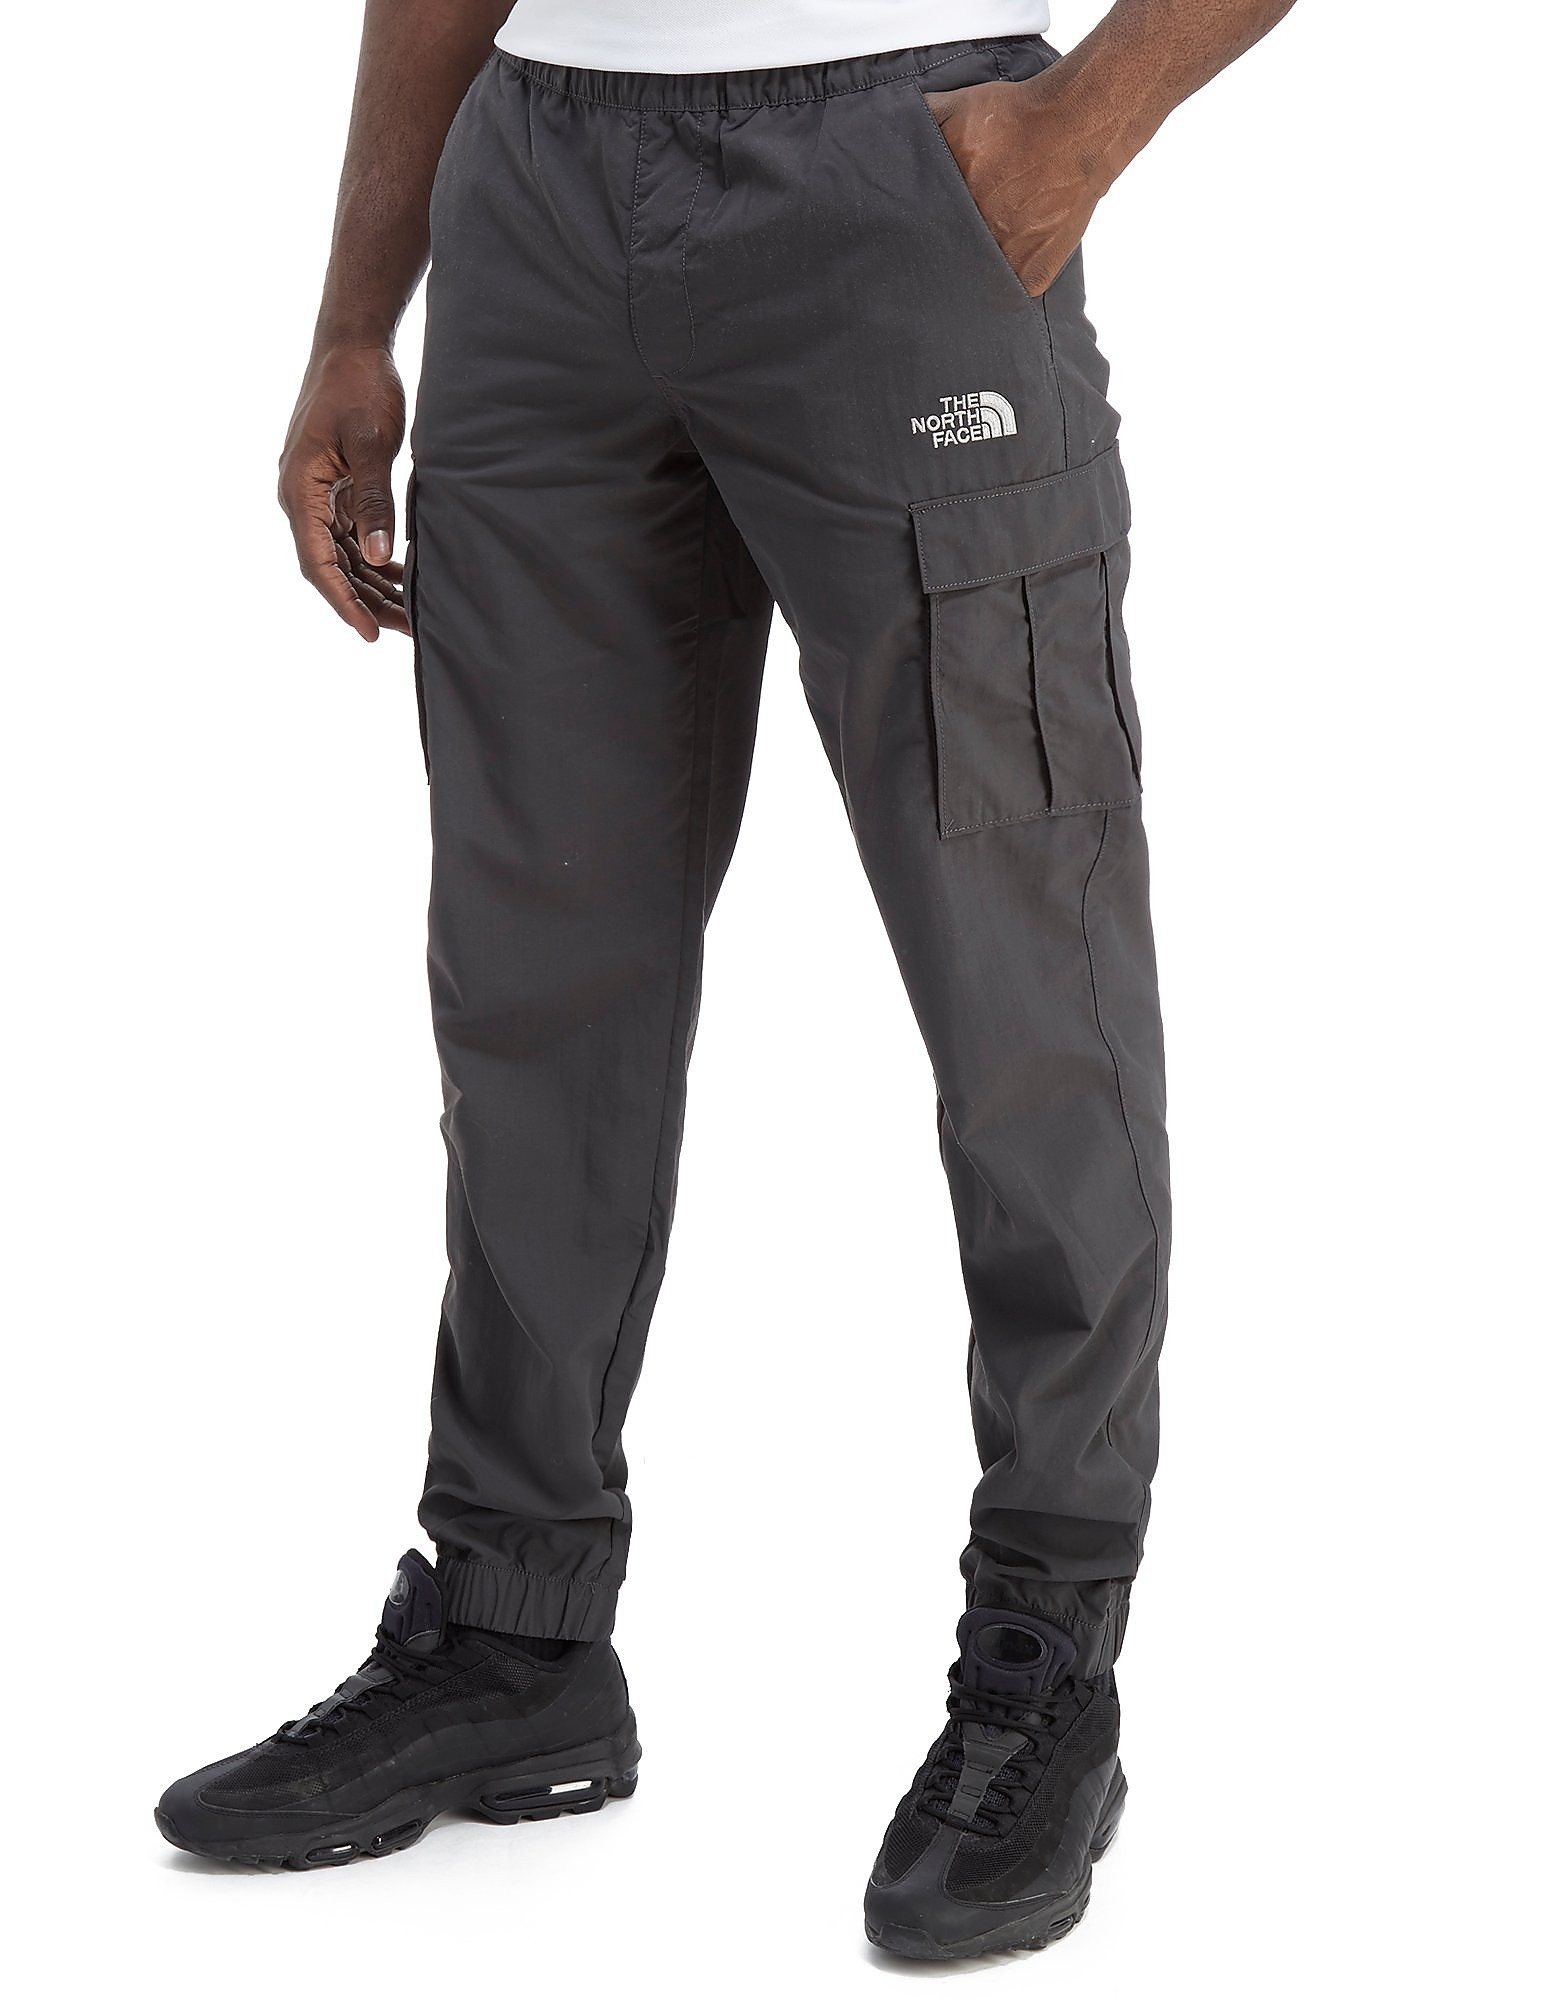 The North Face Cargo Pants